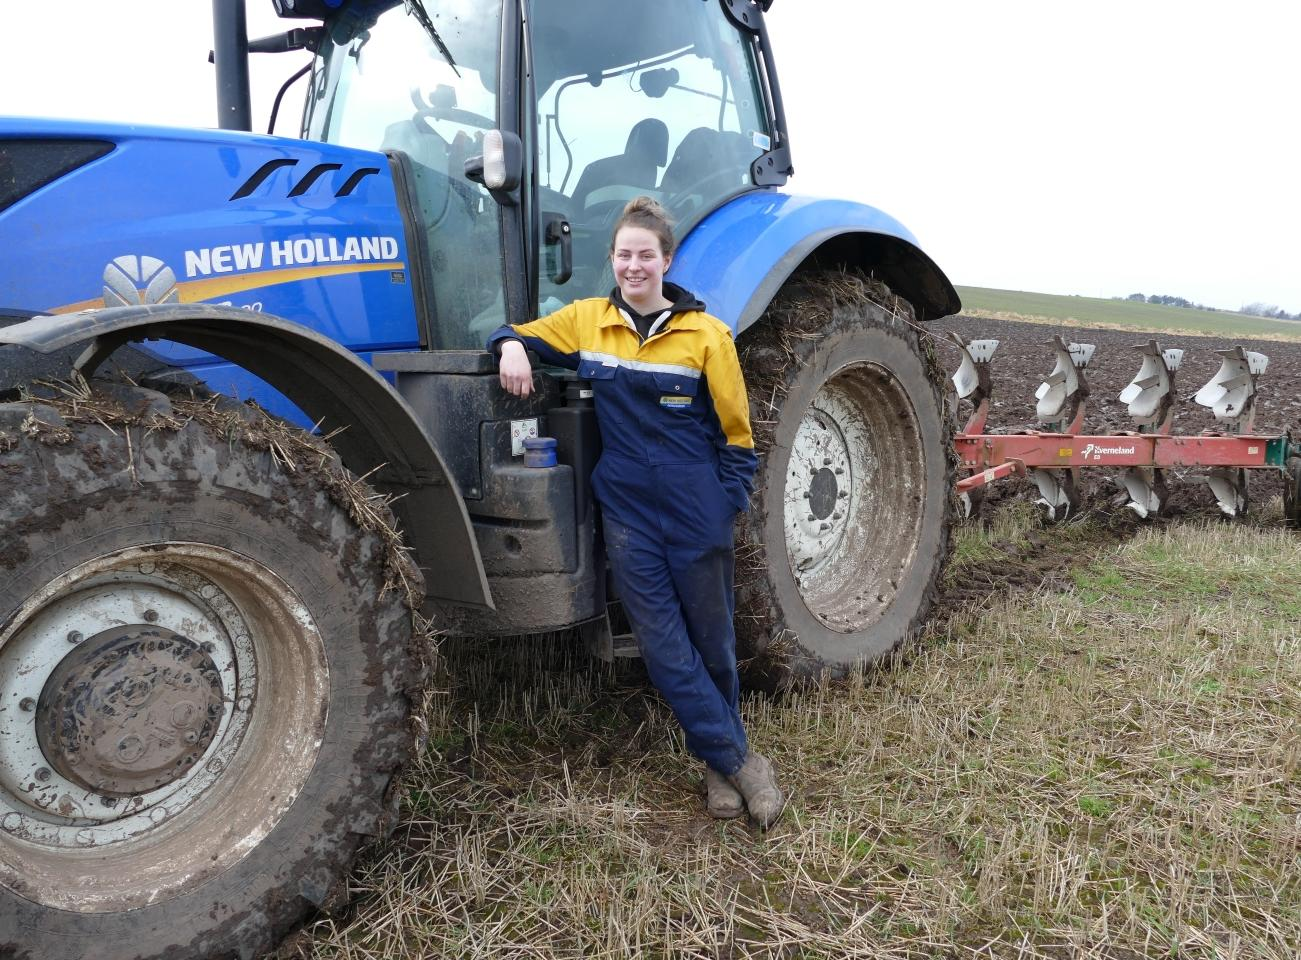 An agriculture apprentice leans against a tractor